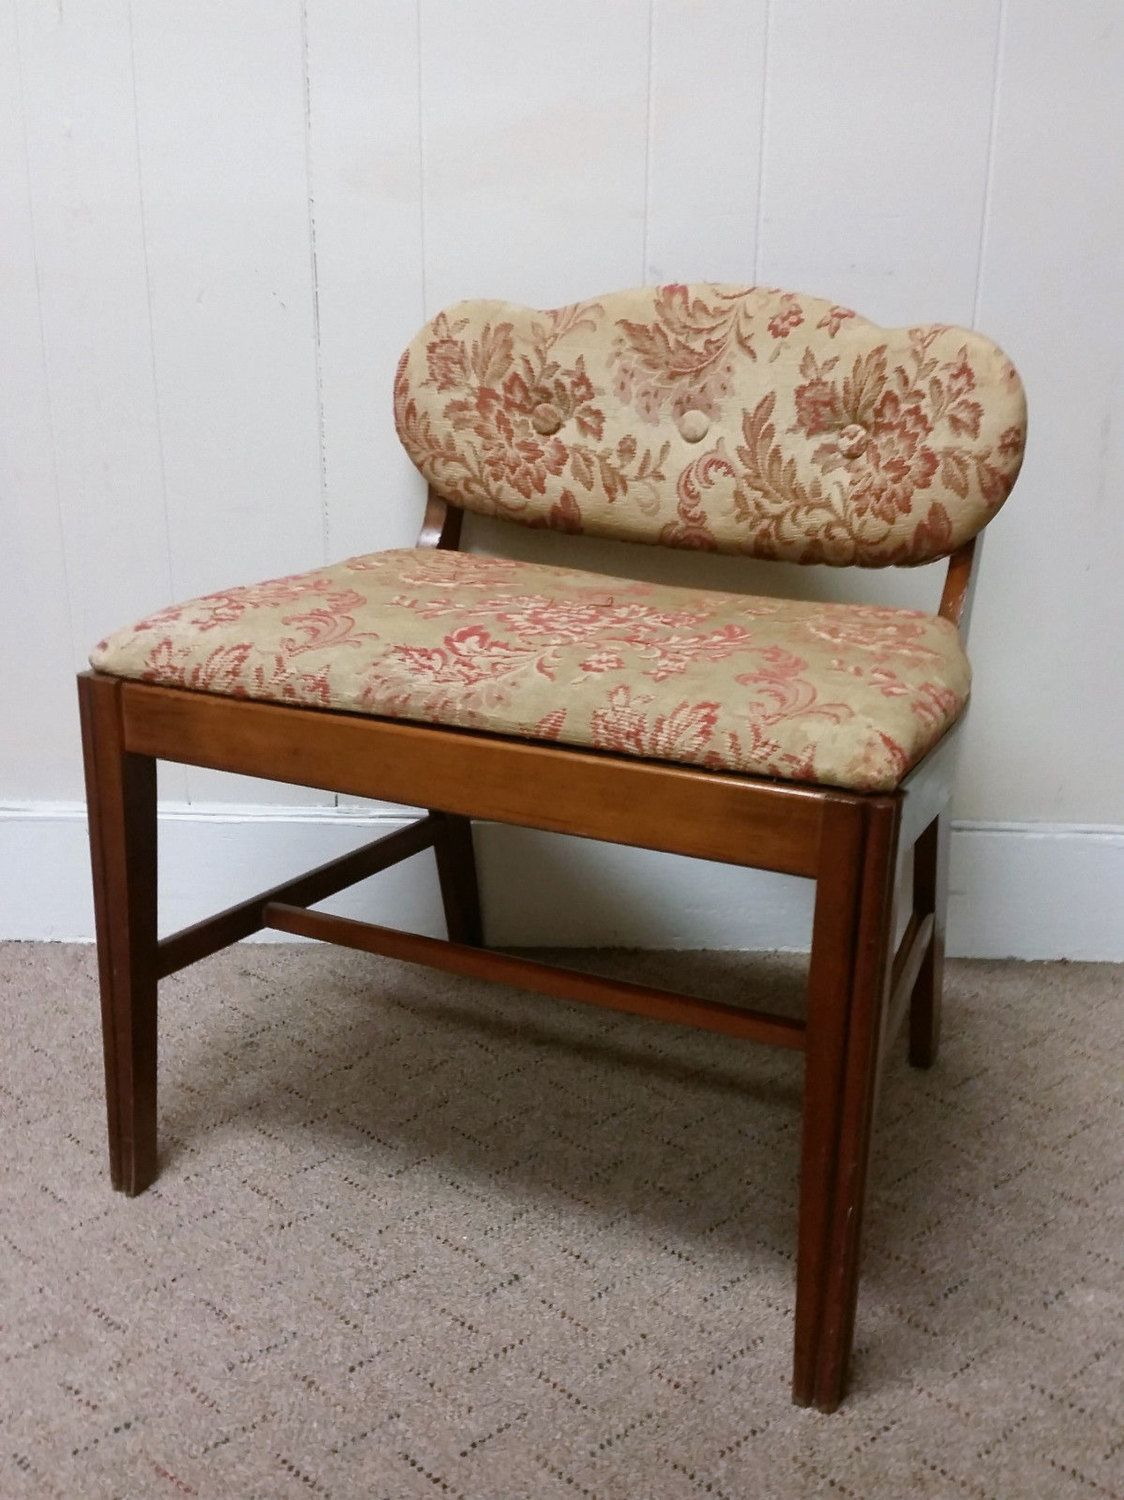 Excellent Art Deco Vanity Bench Stool Vintage 60S Wood Chair Piano Andrewgaddart Wooden Chair Designs For Living Room Andrewgaddartcom